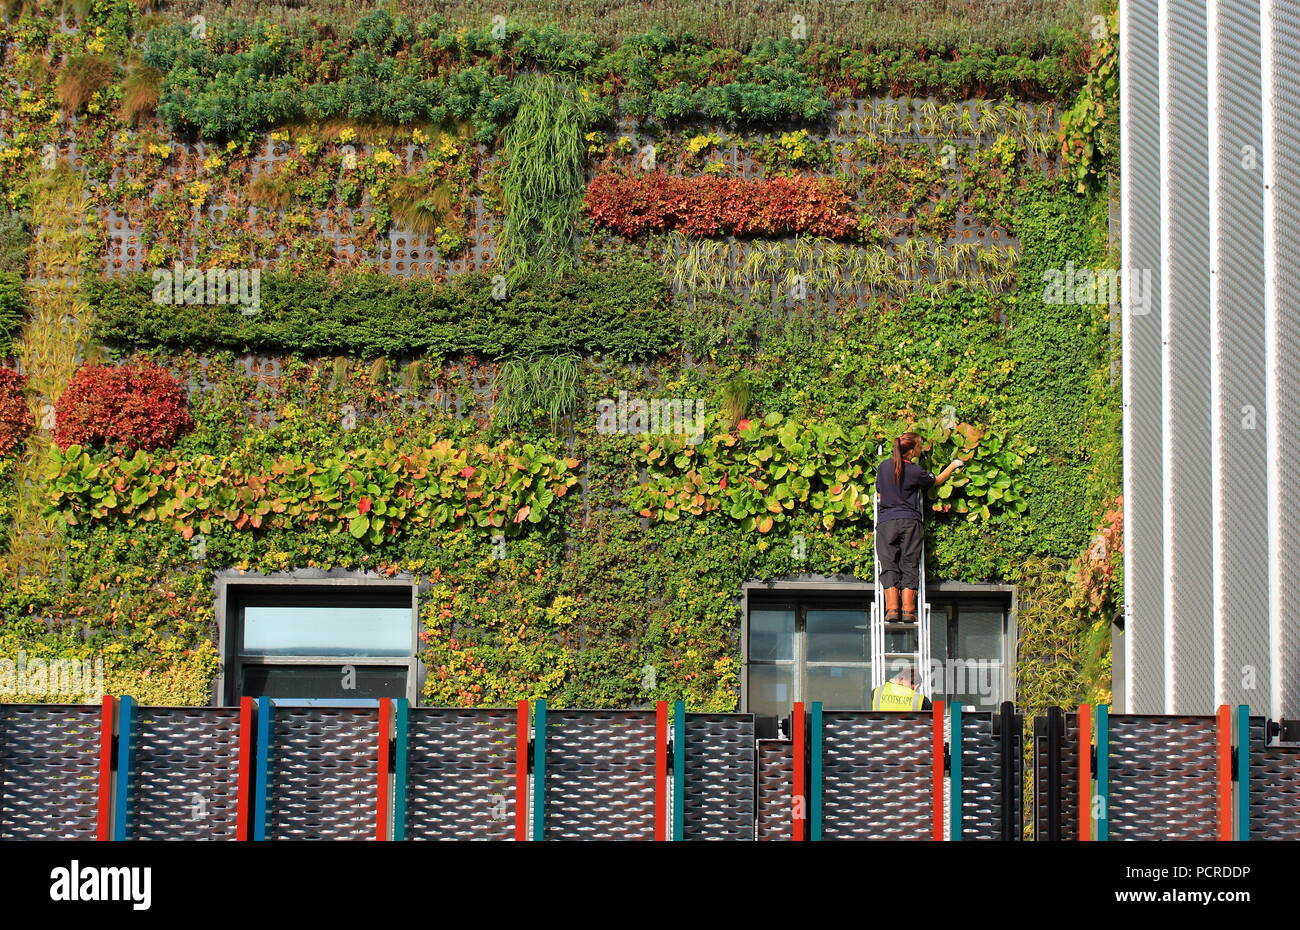 Gardener On The Ladder Planting Large Vertical Garden On The Wall Of  Building In Camden Town